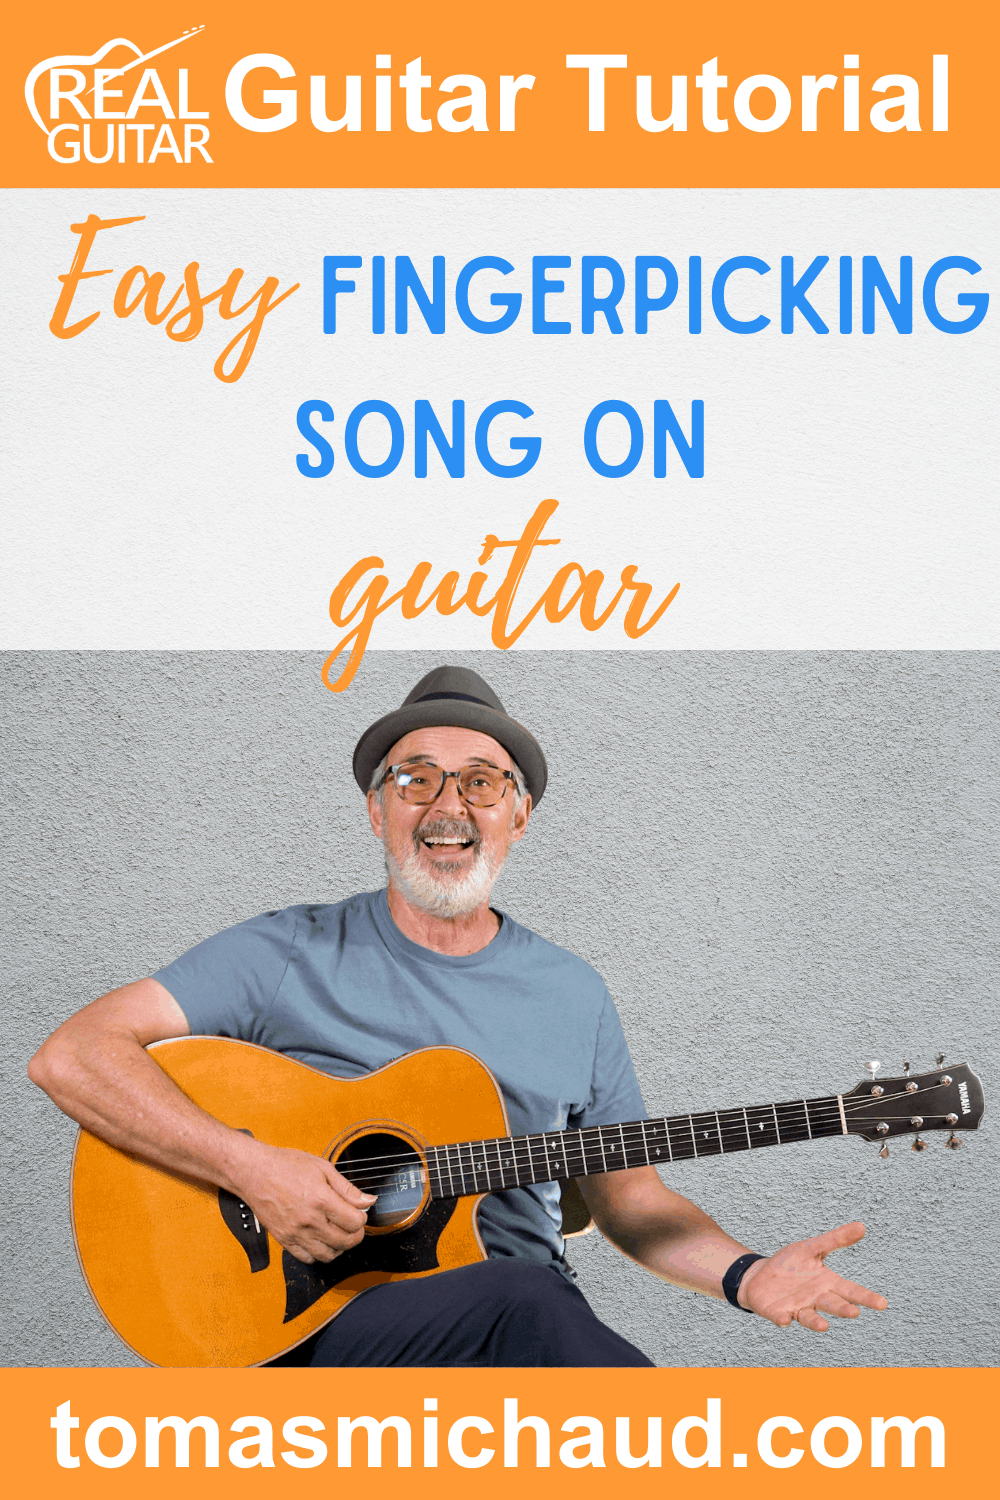 Easy Fingerpicking Song on Guitar